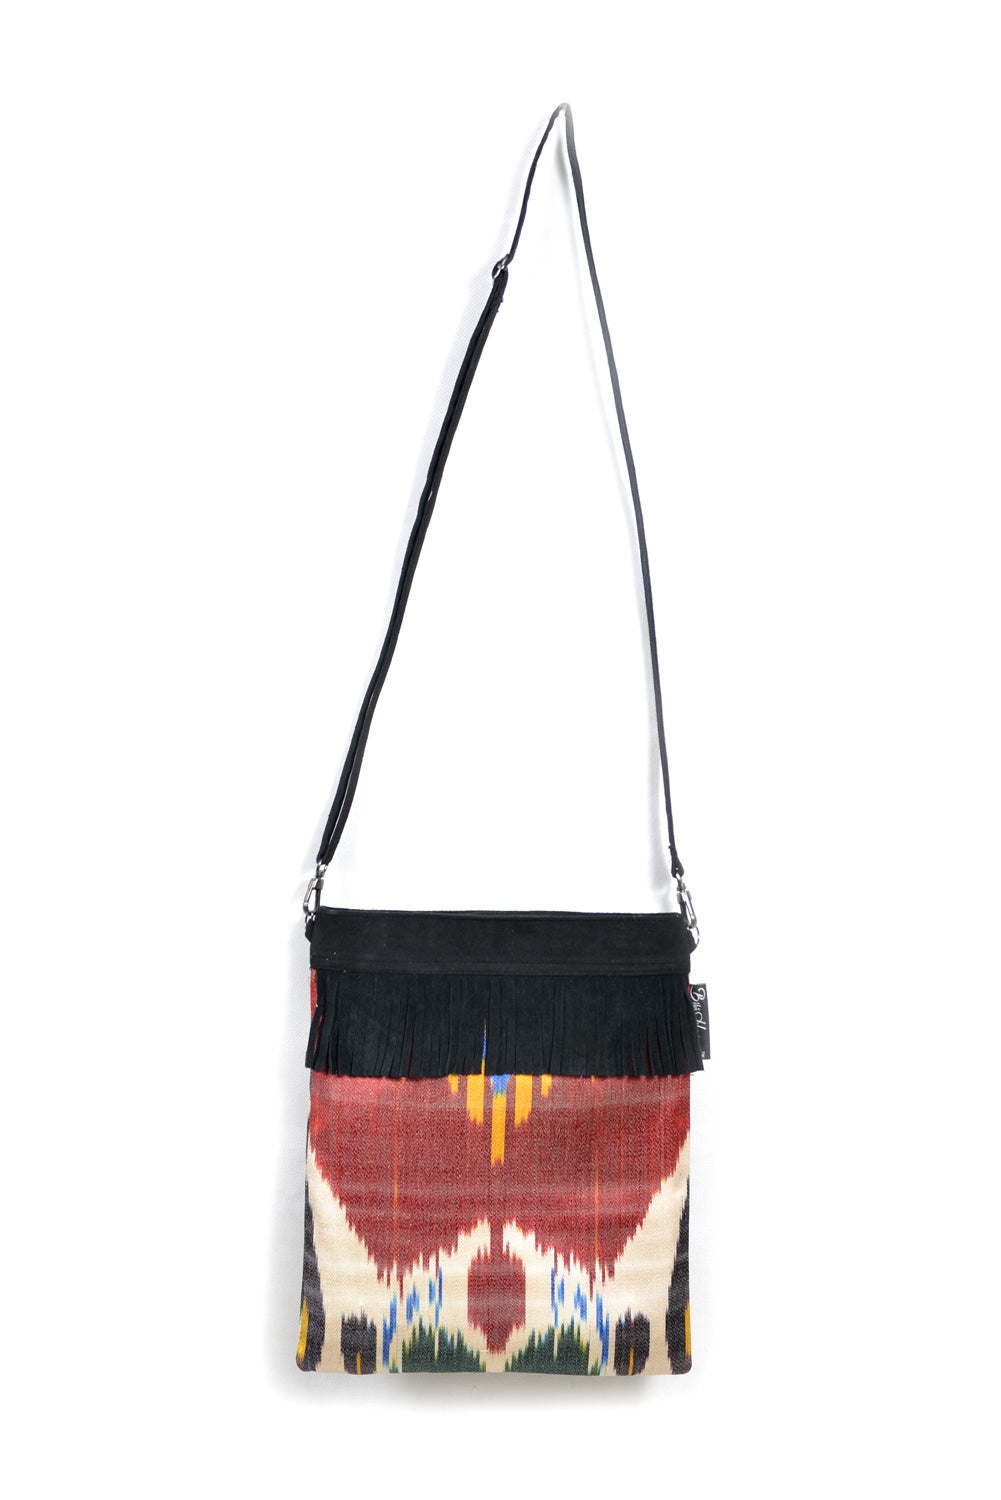 Ikat Messenger Bag